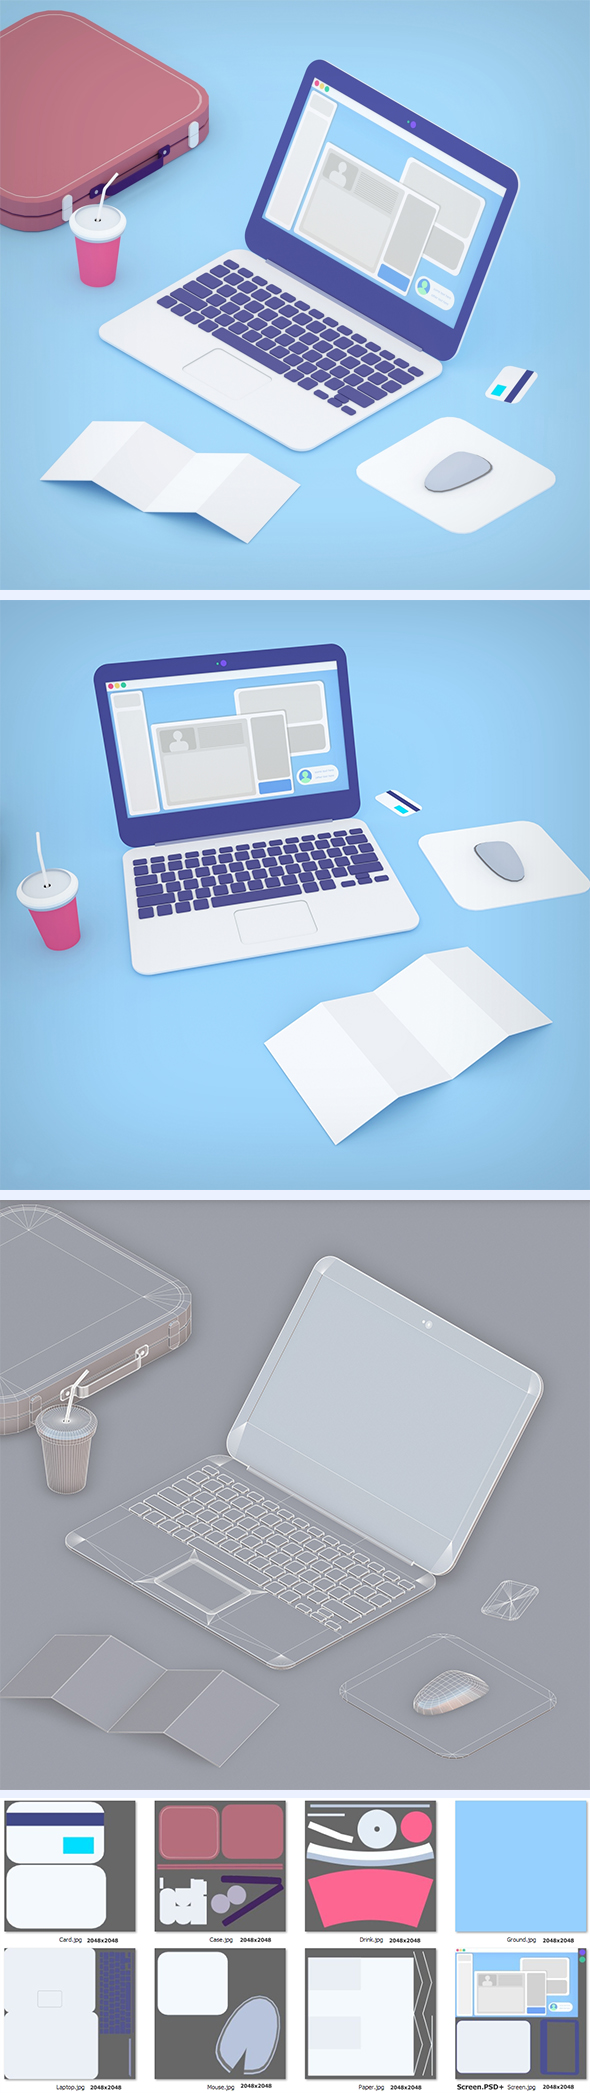 Laptop in toon 3d style - 3DOcean Item for Sale